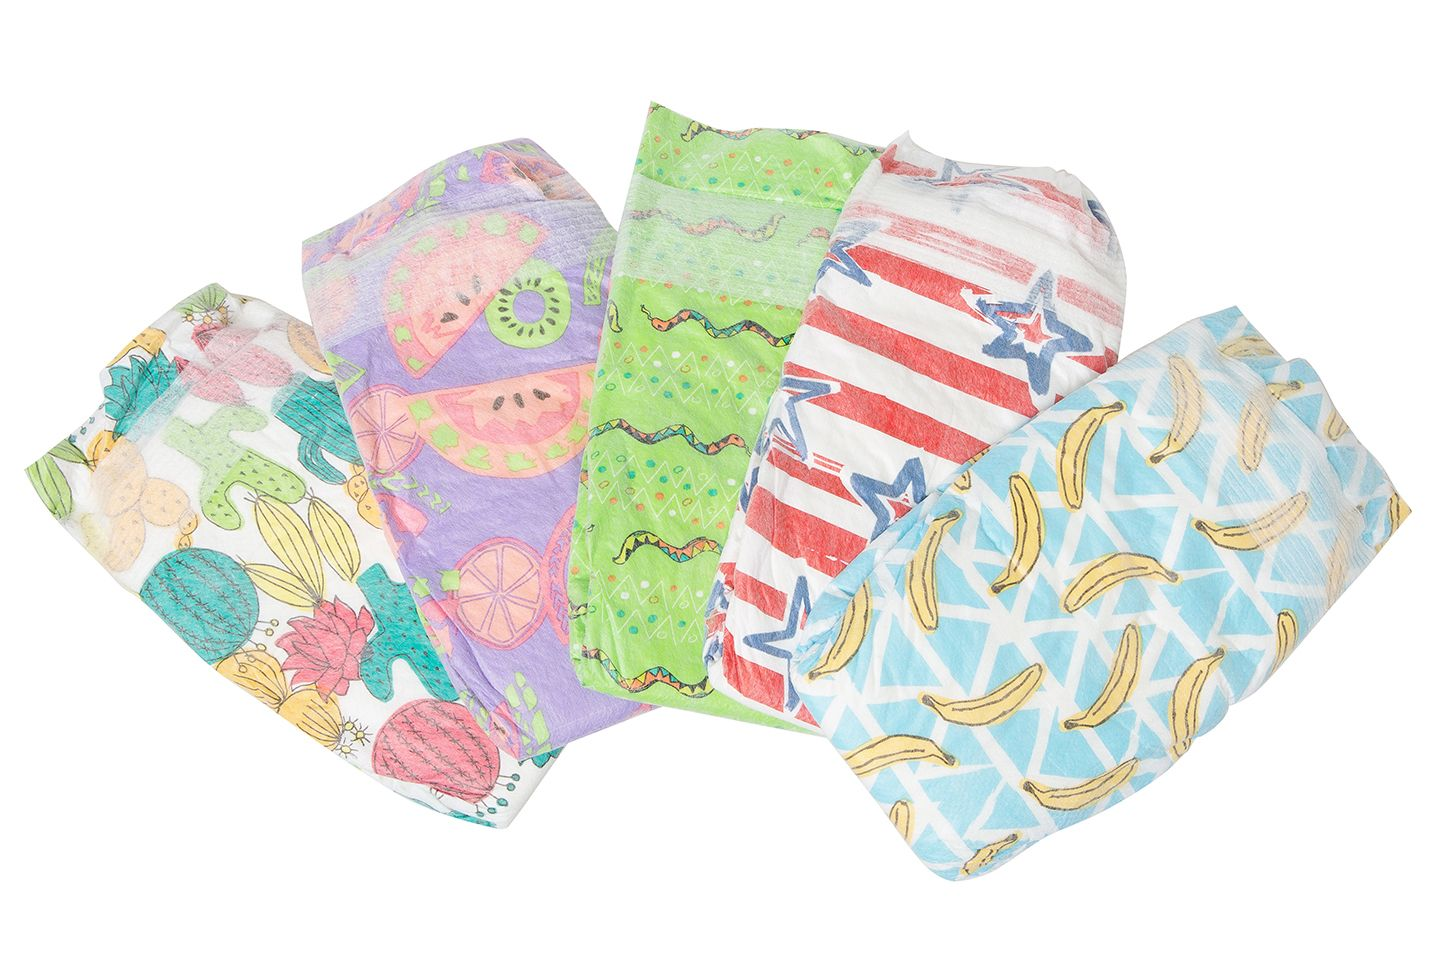 Baby Diapers  Pinterest  Honest diapers Diapers and Baby gear